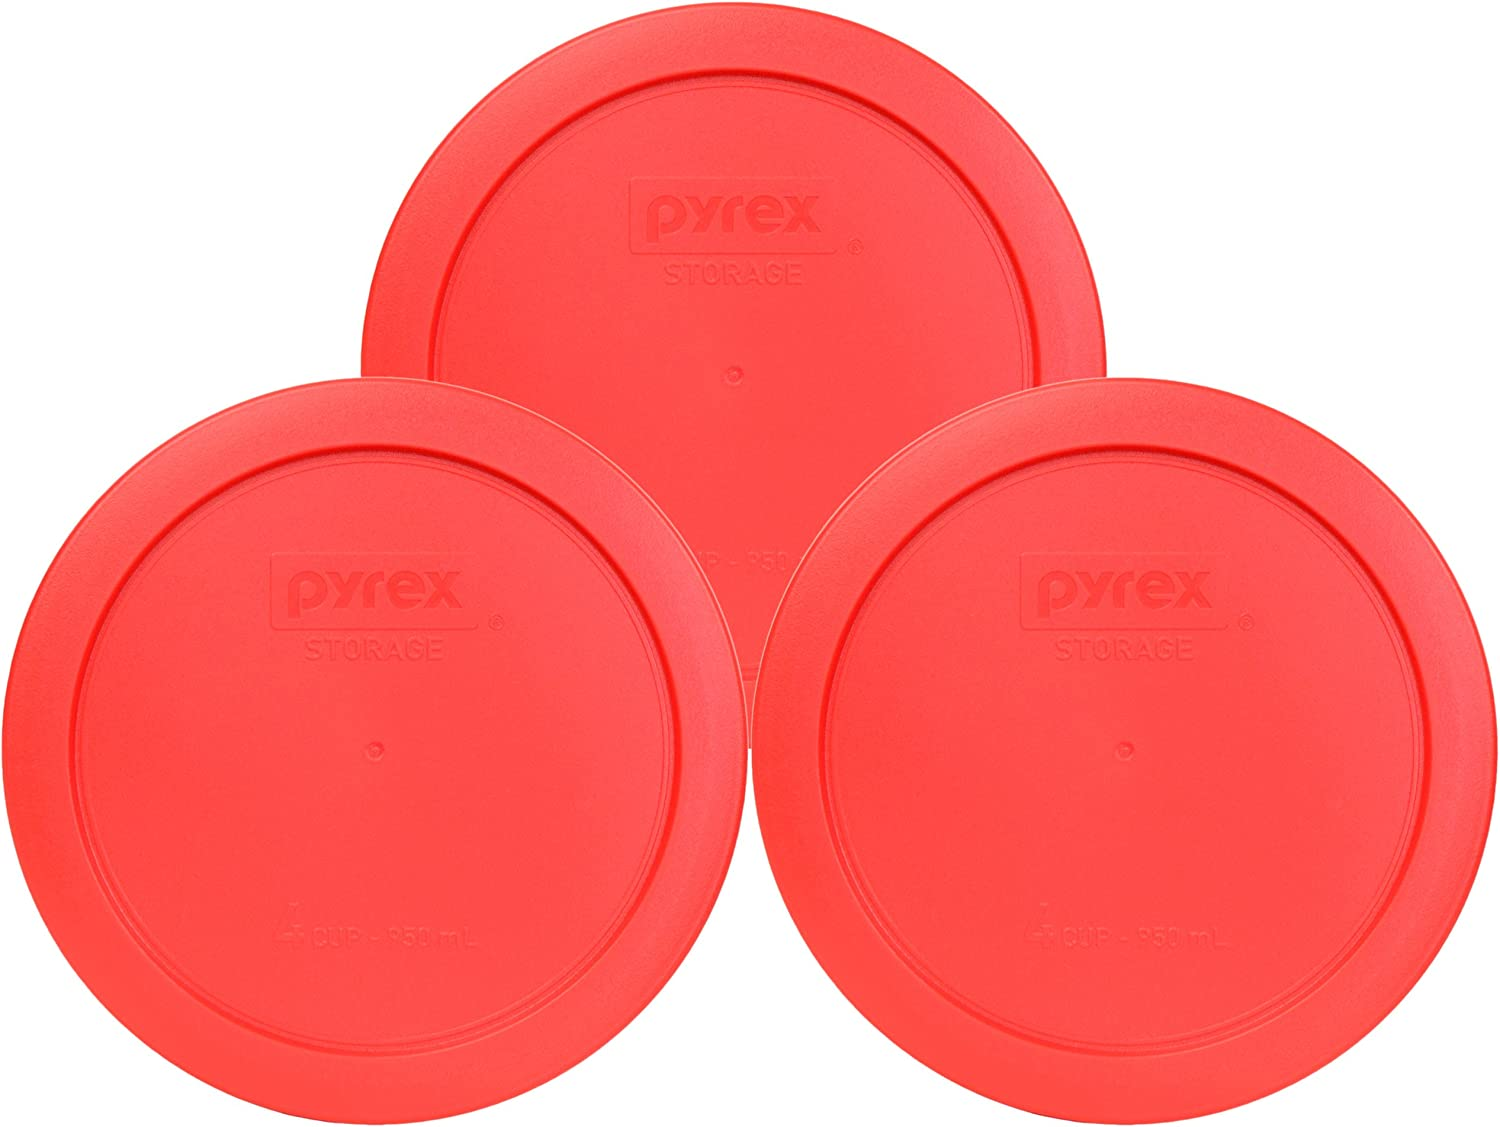 Pyrex 7201-PC Round 4 Cup Storage Lid for Glass Bowls (3, Red)